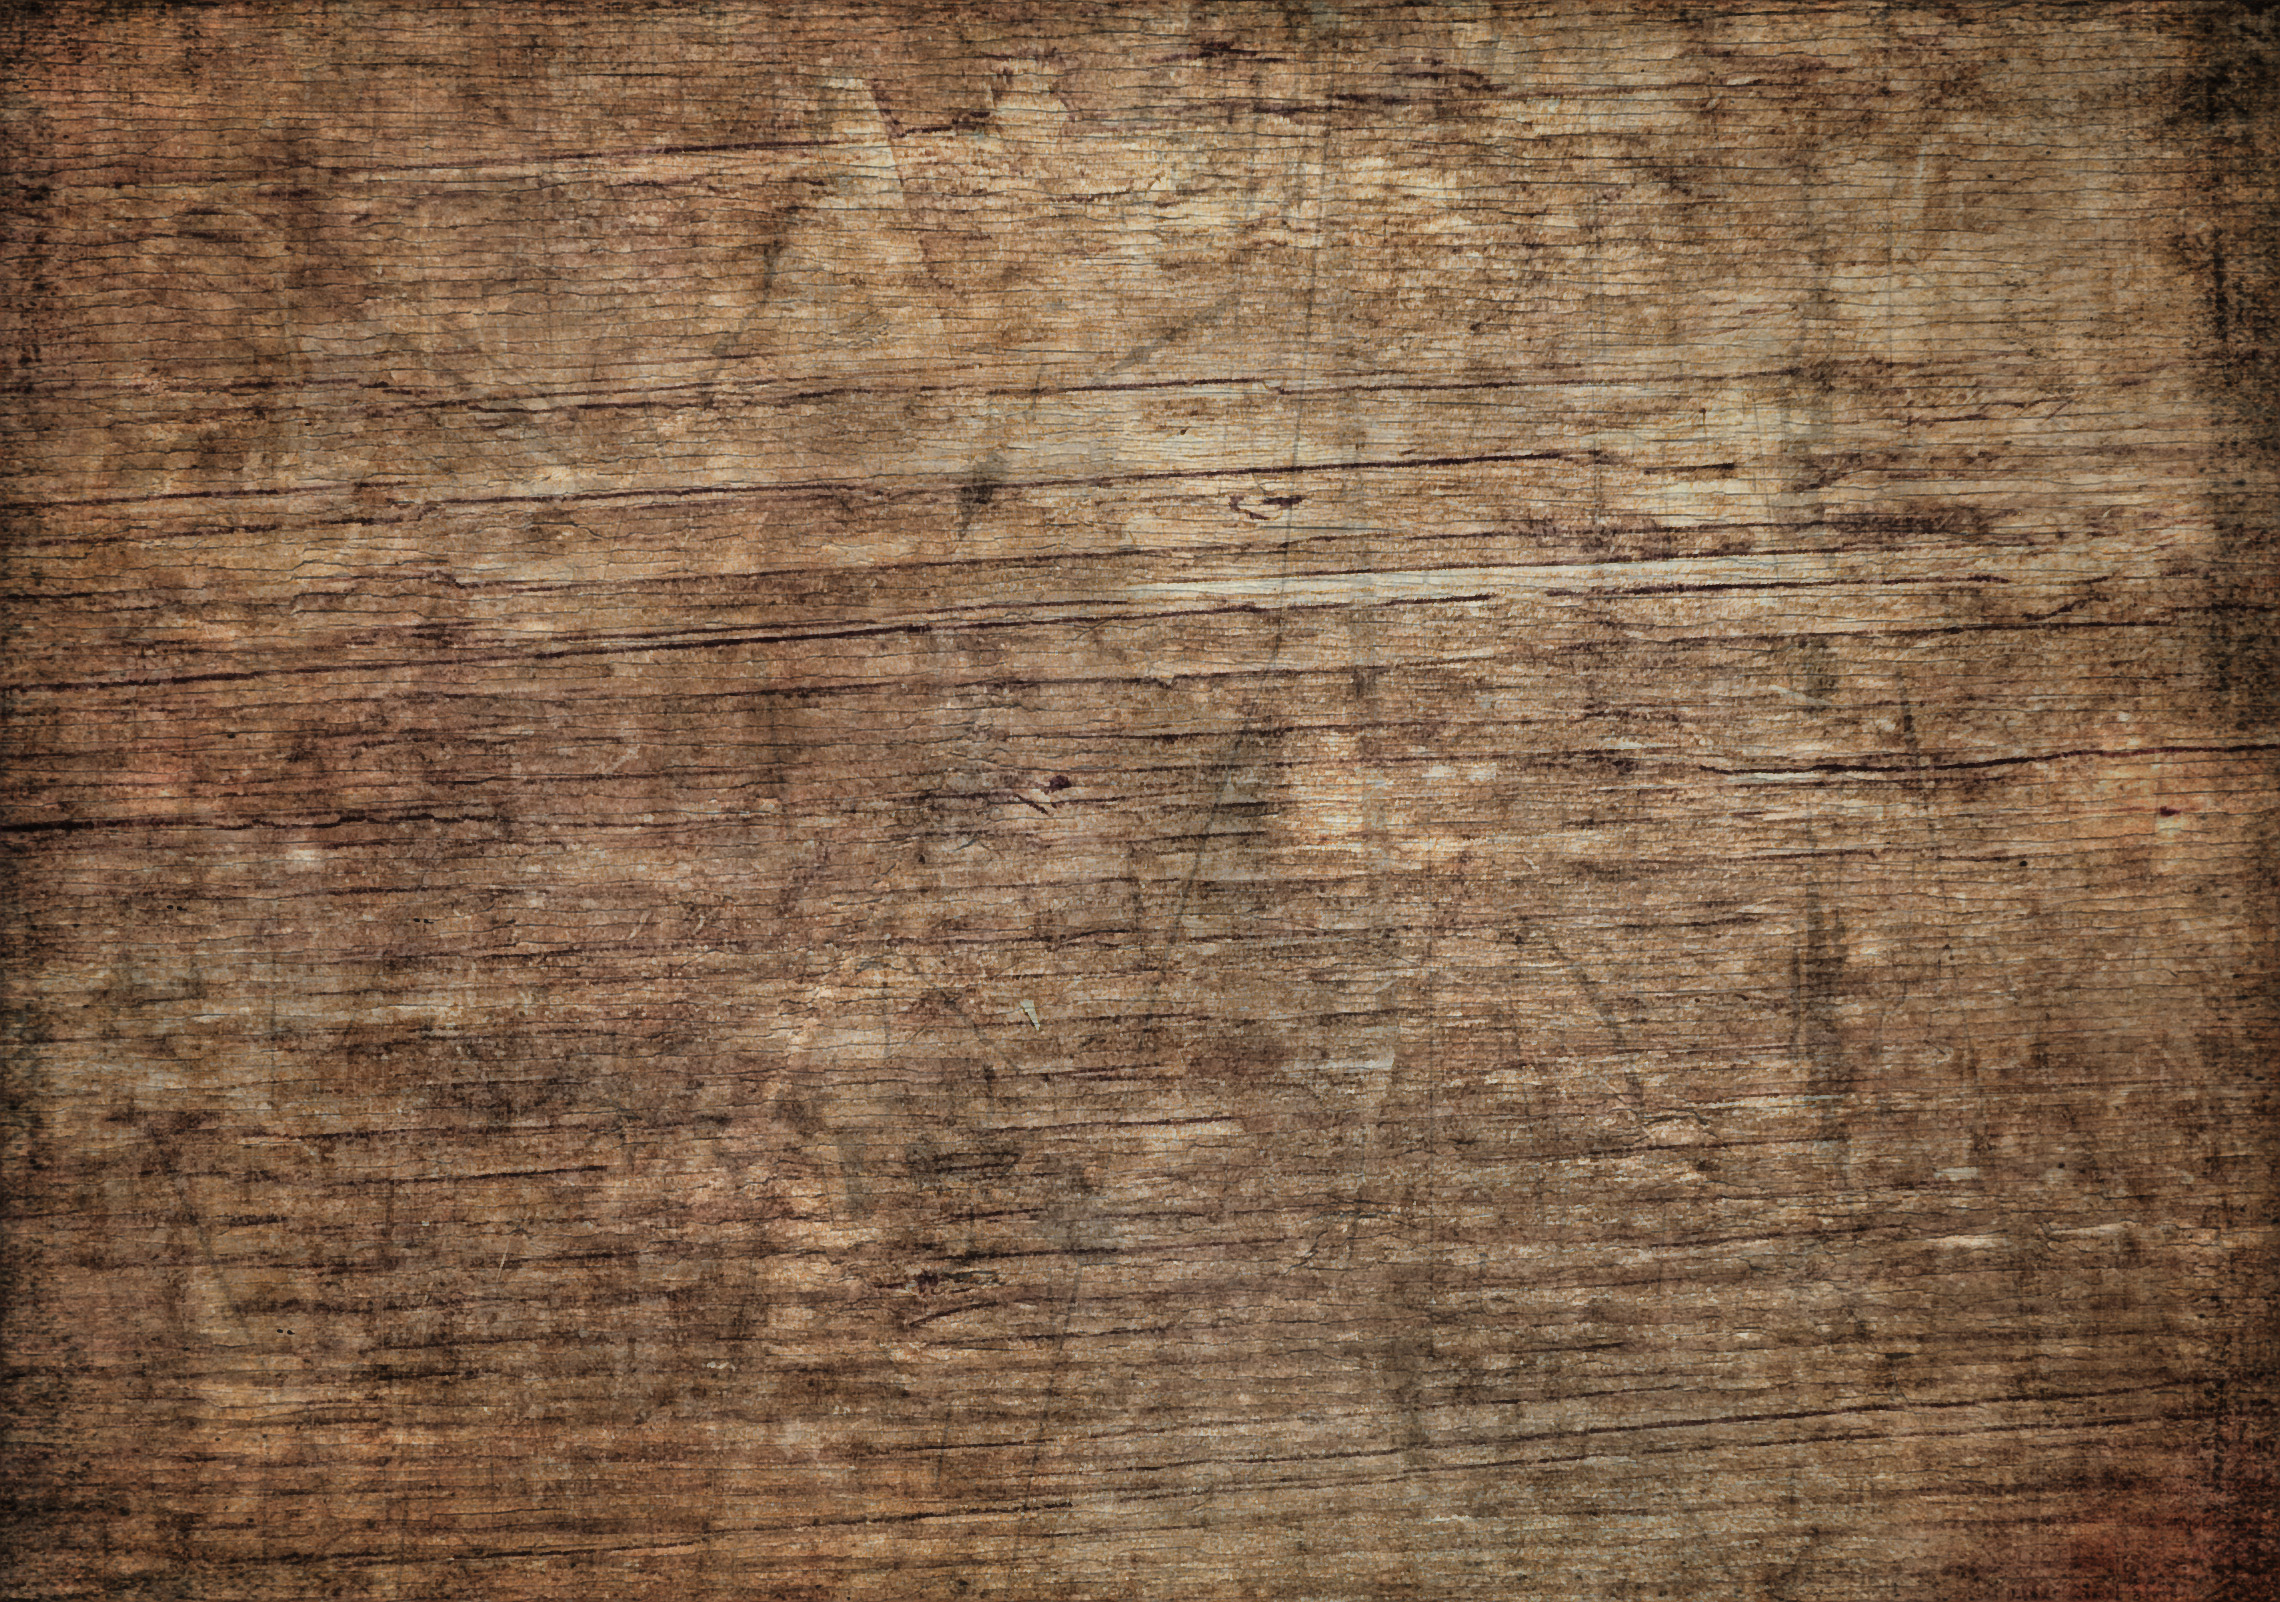 Back ≫ Gallery For ≫ Grunge Wood Texture Seamless | Chainimage